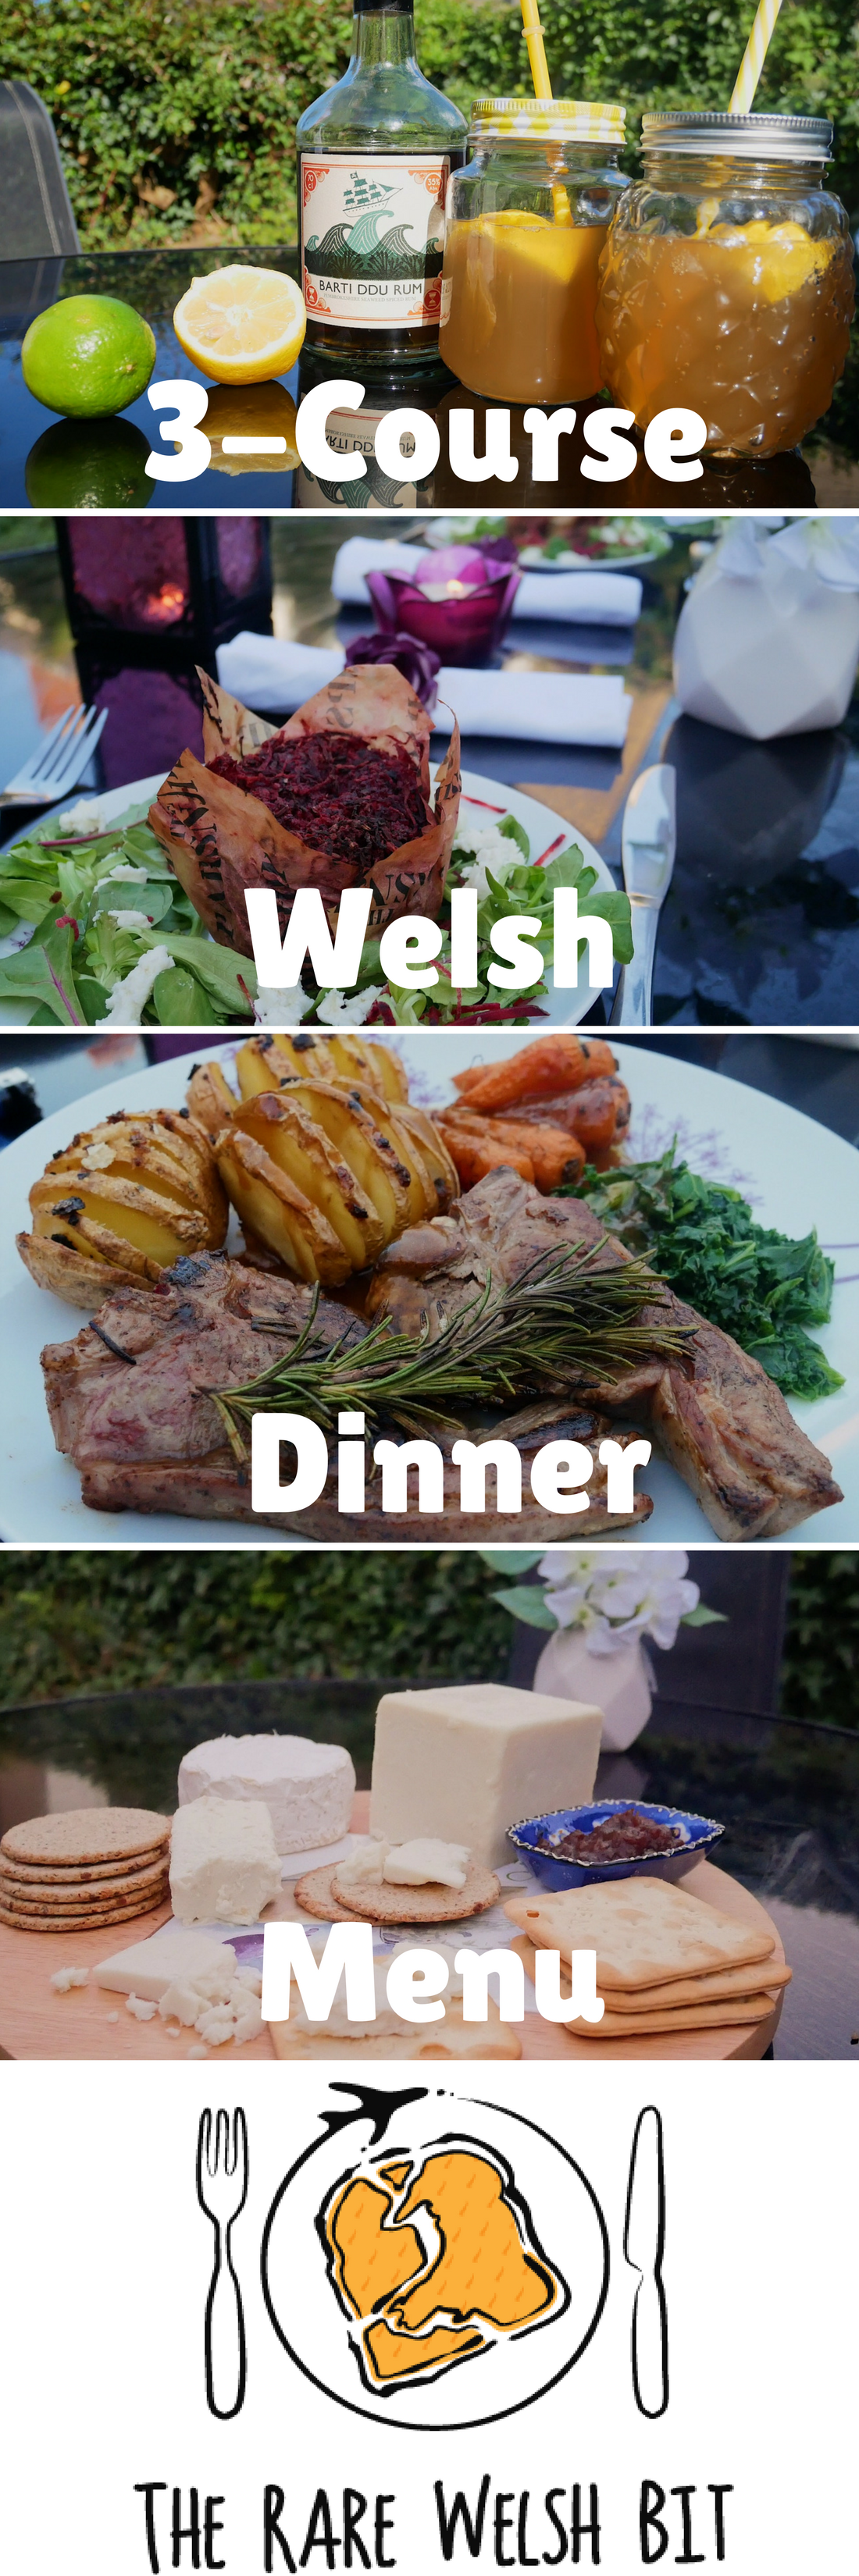 Looking for summer dinner party menu ideas? Take a look at this 3-course Welsh-themed dinner party menu for inspiration - the entire three courses can be prepared in less than one hour (excluding marinating time)! #dinnerparty #summerdinnerparty #summerfood #3coursemeal #dinnerpartytemplates #dinnerpartyrecipes #welshfood #wales